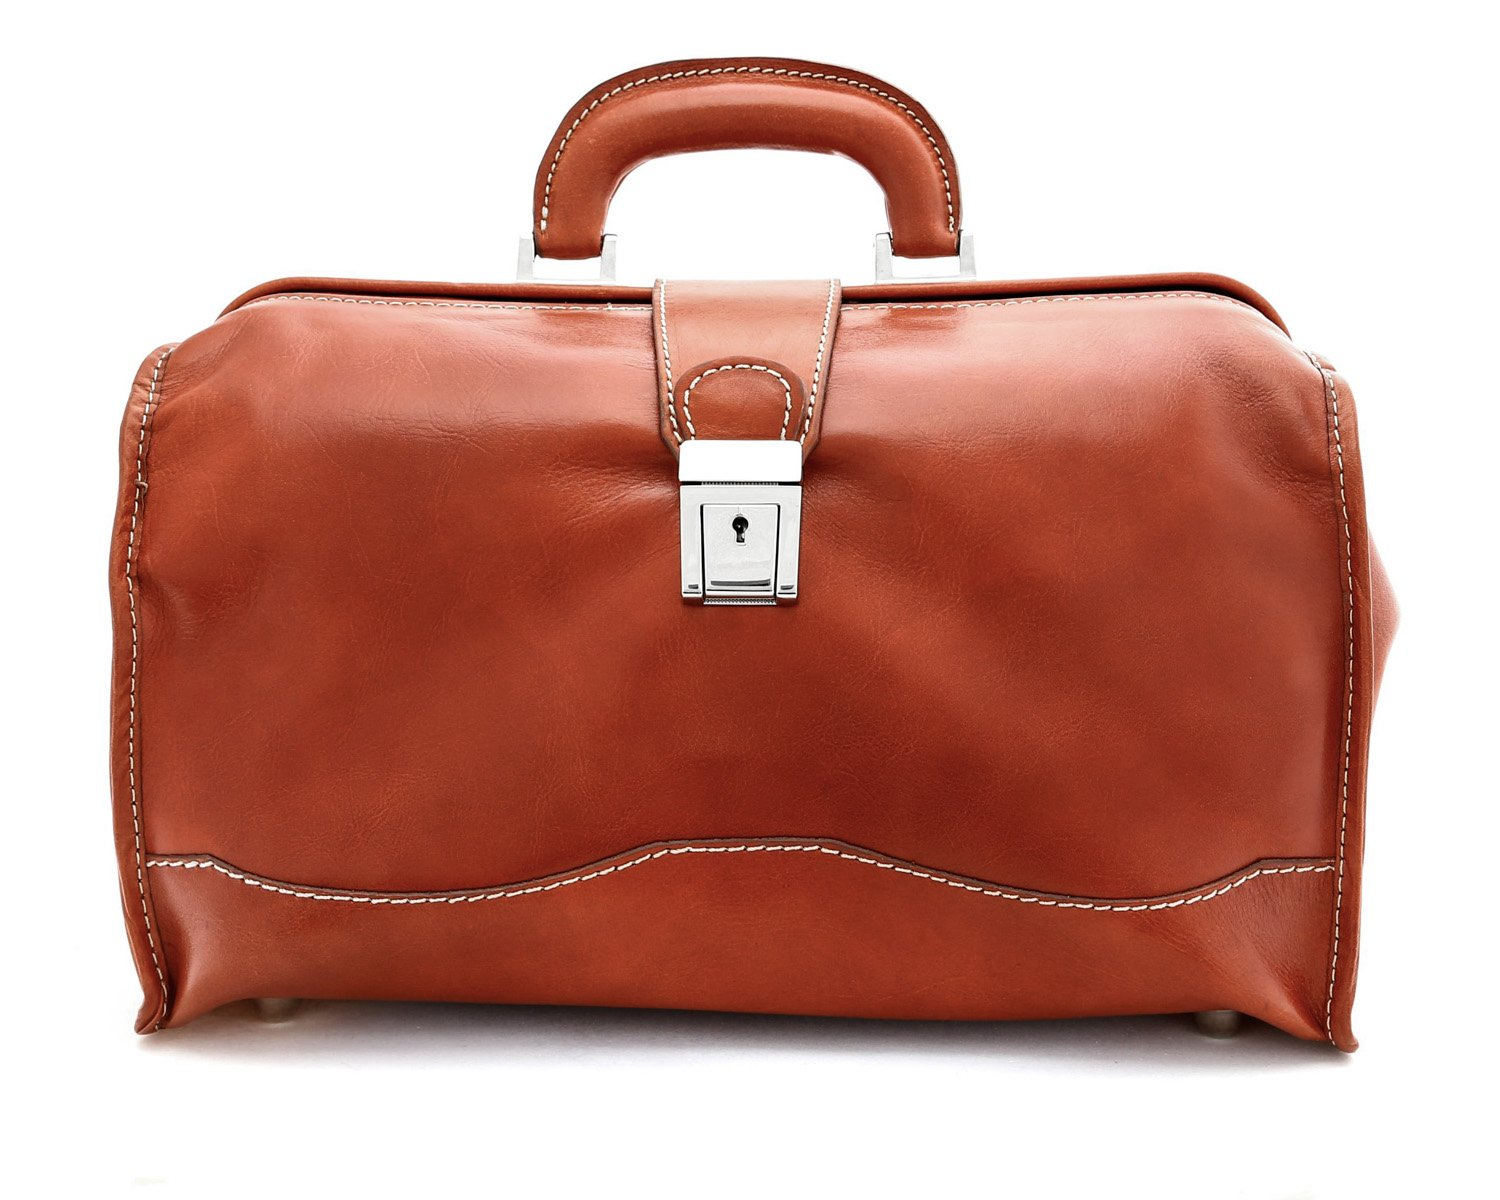 Luggage Depot USA, LLC Alberto Bellucci Italian Leather Classic Doctor Top Handle Hand Duffel Bag, Honey, One Size